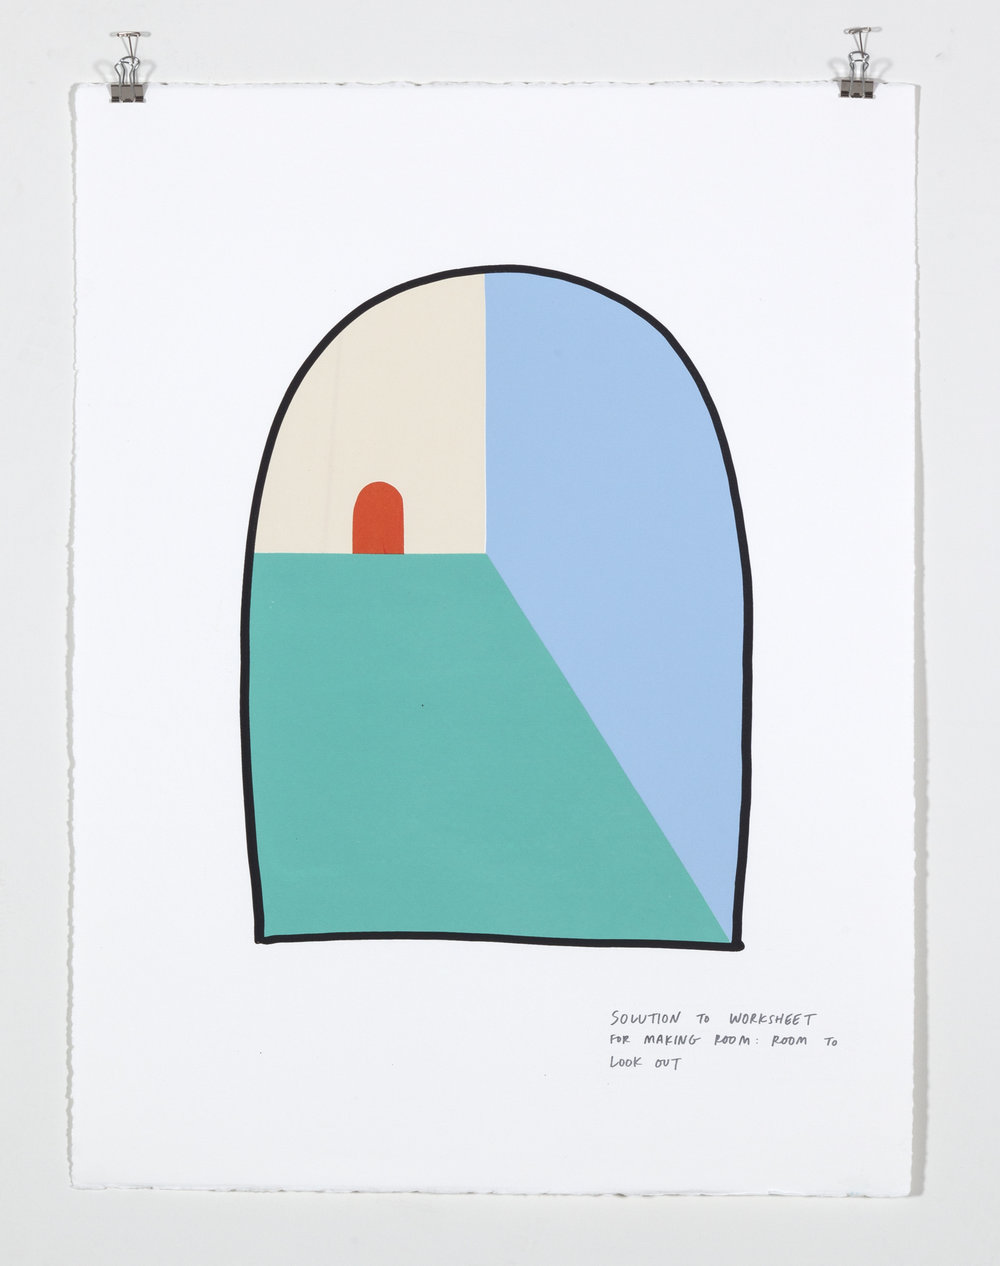 Solution to Worksheet for Making Room: Room to Look Out,  2018  Six color silkscreen print on paper 19 7/8 x 25 7/8 inches